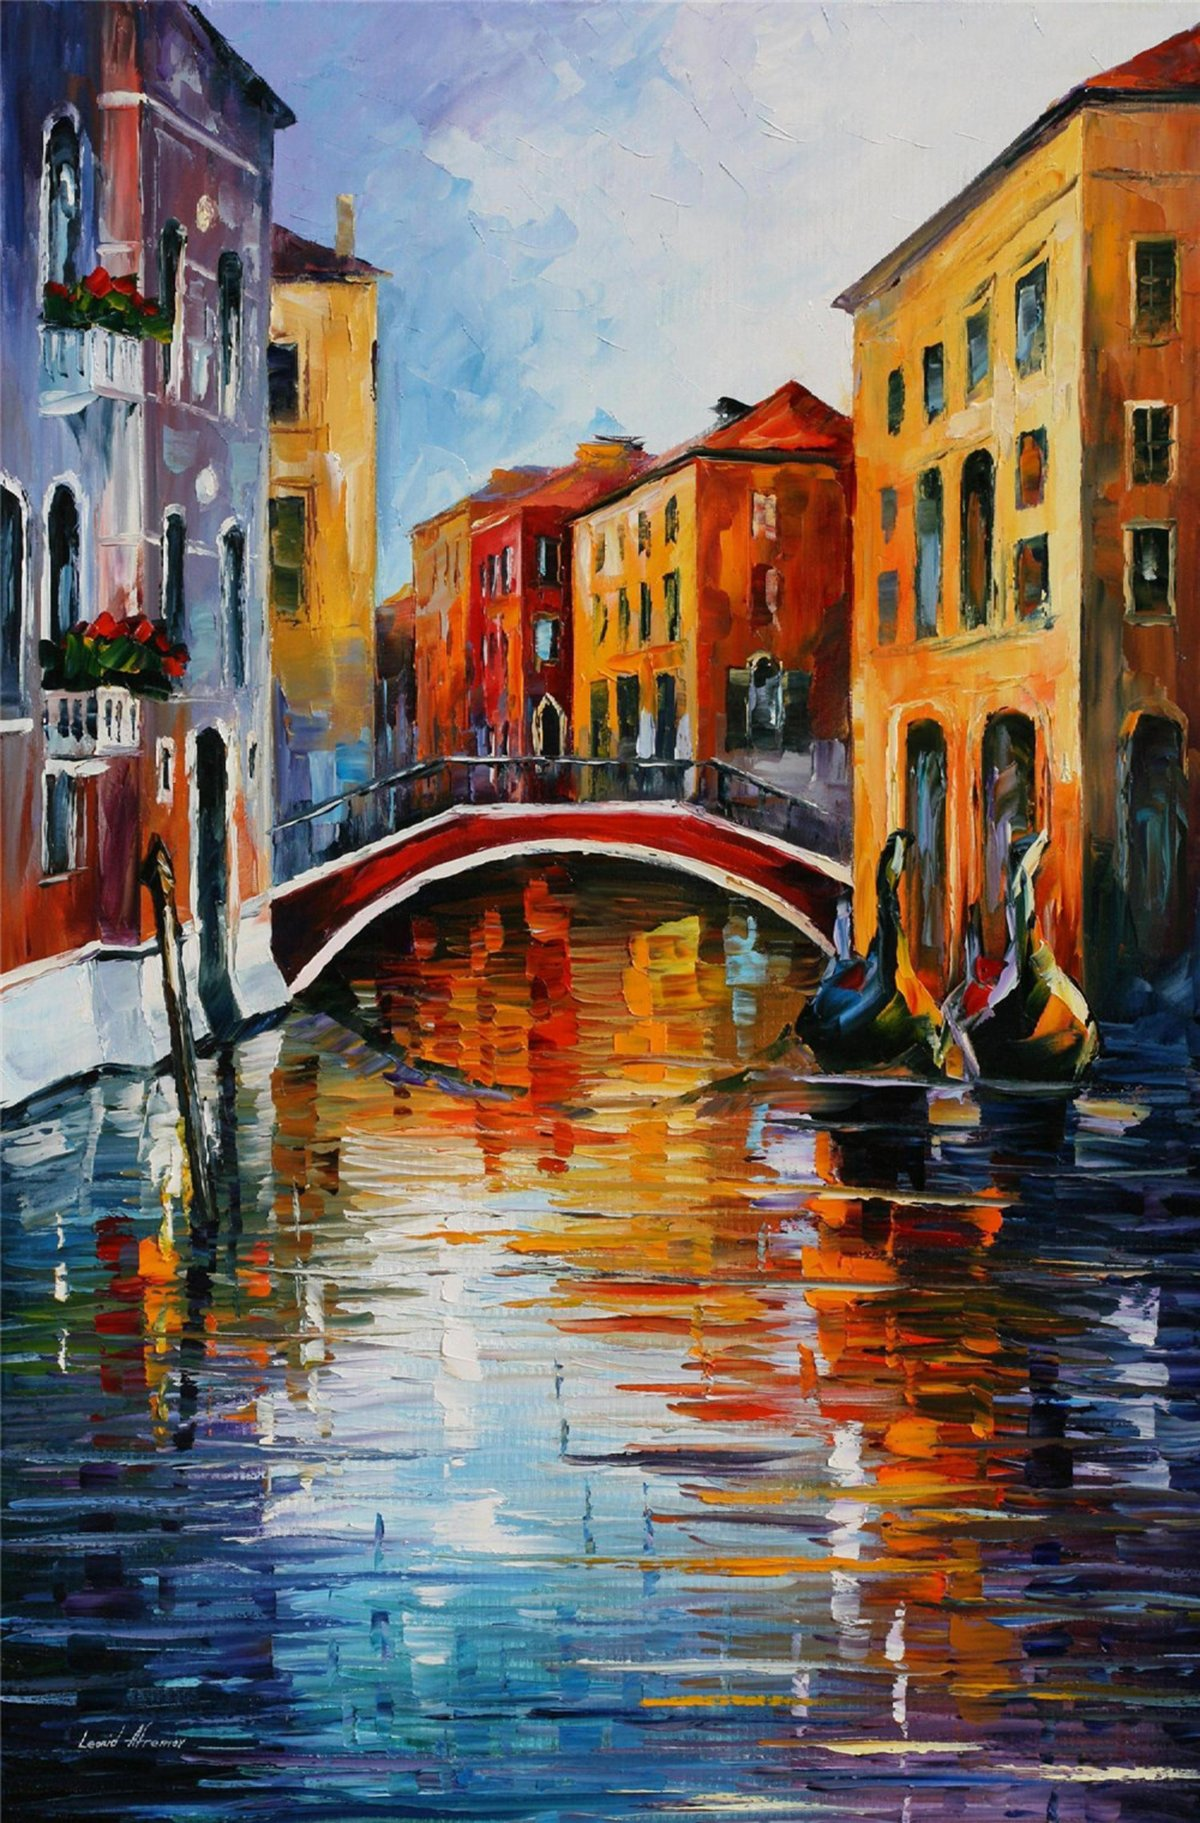 100% Hand Painted Oil Paintings Decor Abstract Modern Painting Venice Town Home Wall Decoration (20X30 Inch, Home Decor 6) by Bingo Arts